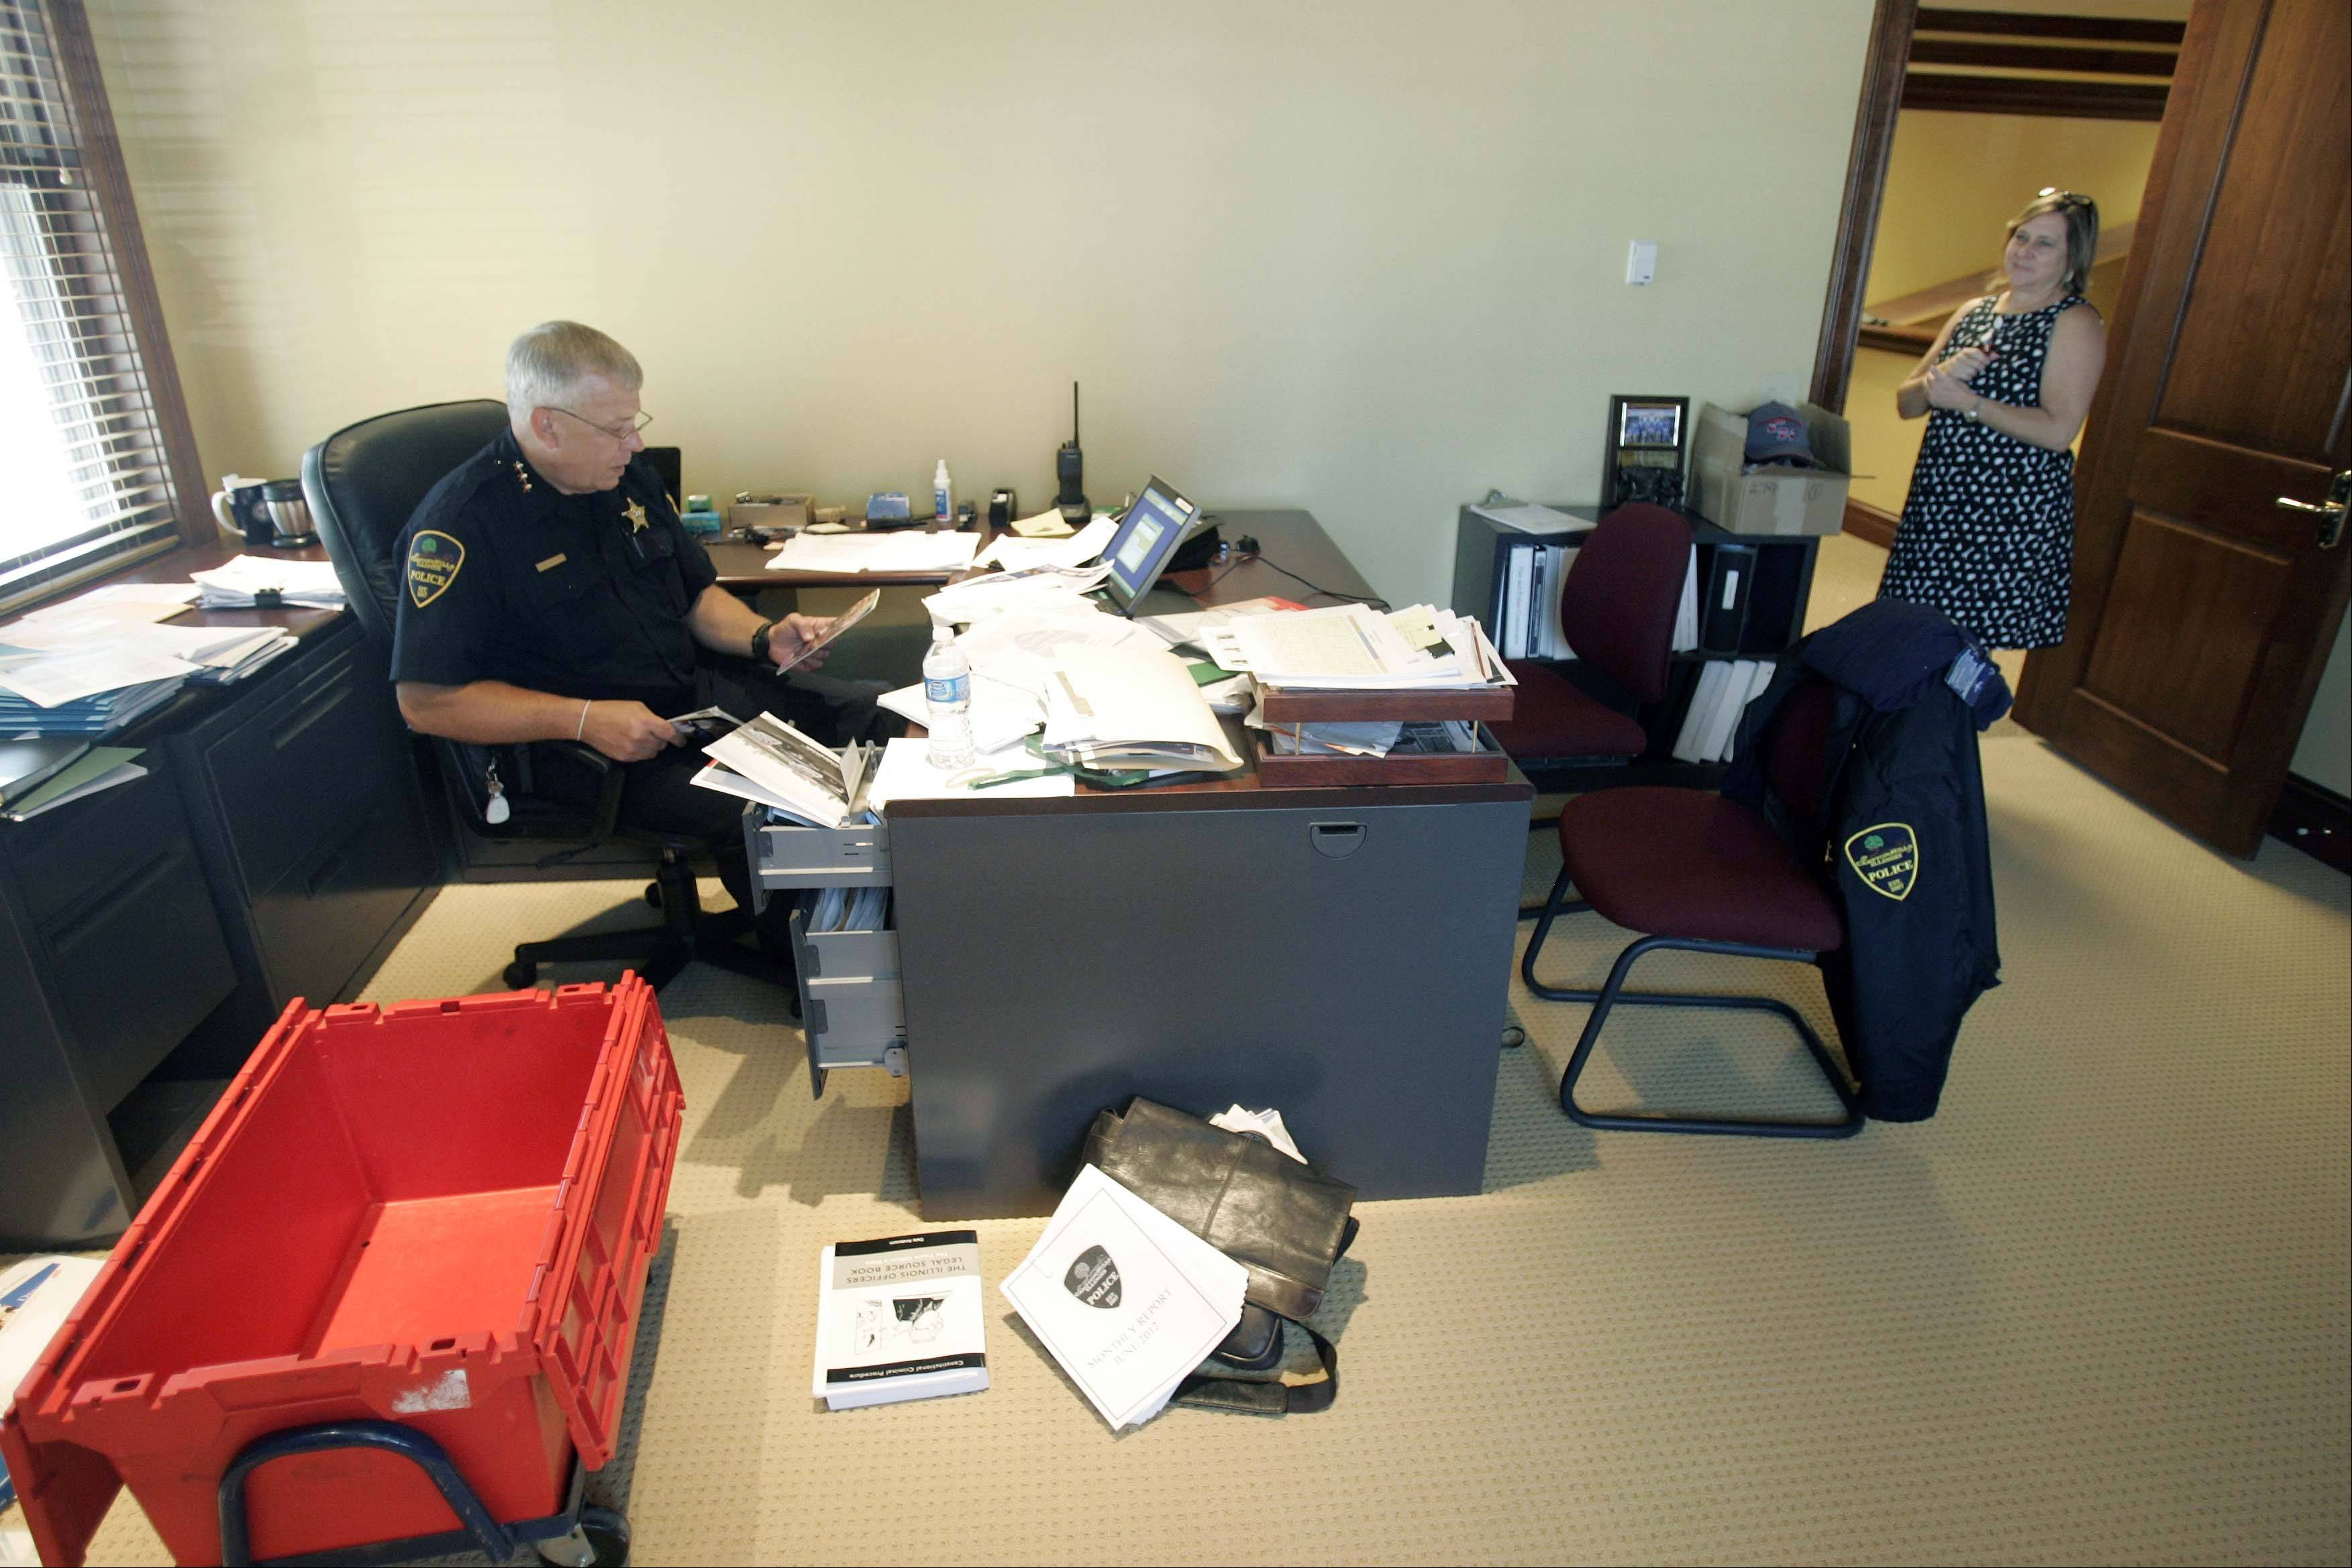 Village President Patsy Smith checks on Chief of Police Daniel Hoffman as he settles into his office at the new Campton Hills Village Hall in July 2012. With more space at the village hall -- along with the trustees' giving the go ahead to free up funds -- the village is expected to hire an administrator in the coming months. Smith has been handling those chores since Campton Hills' incorporation.